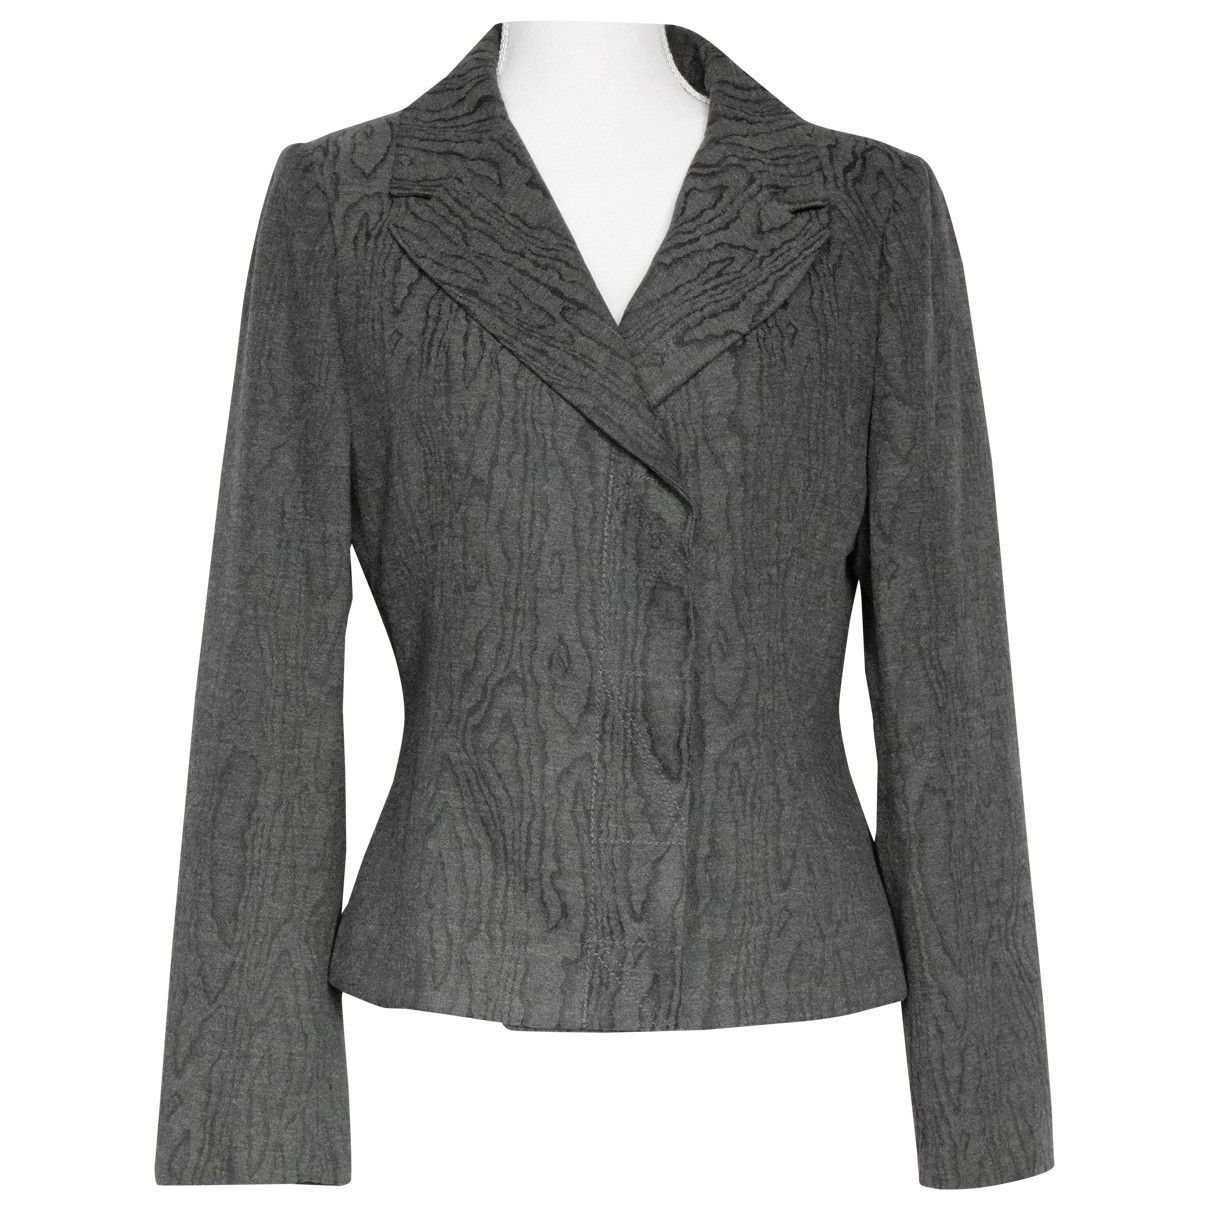 Versace Jeans \N Grey jacket for Women M International